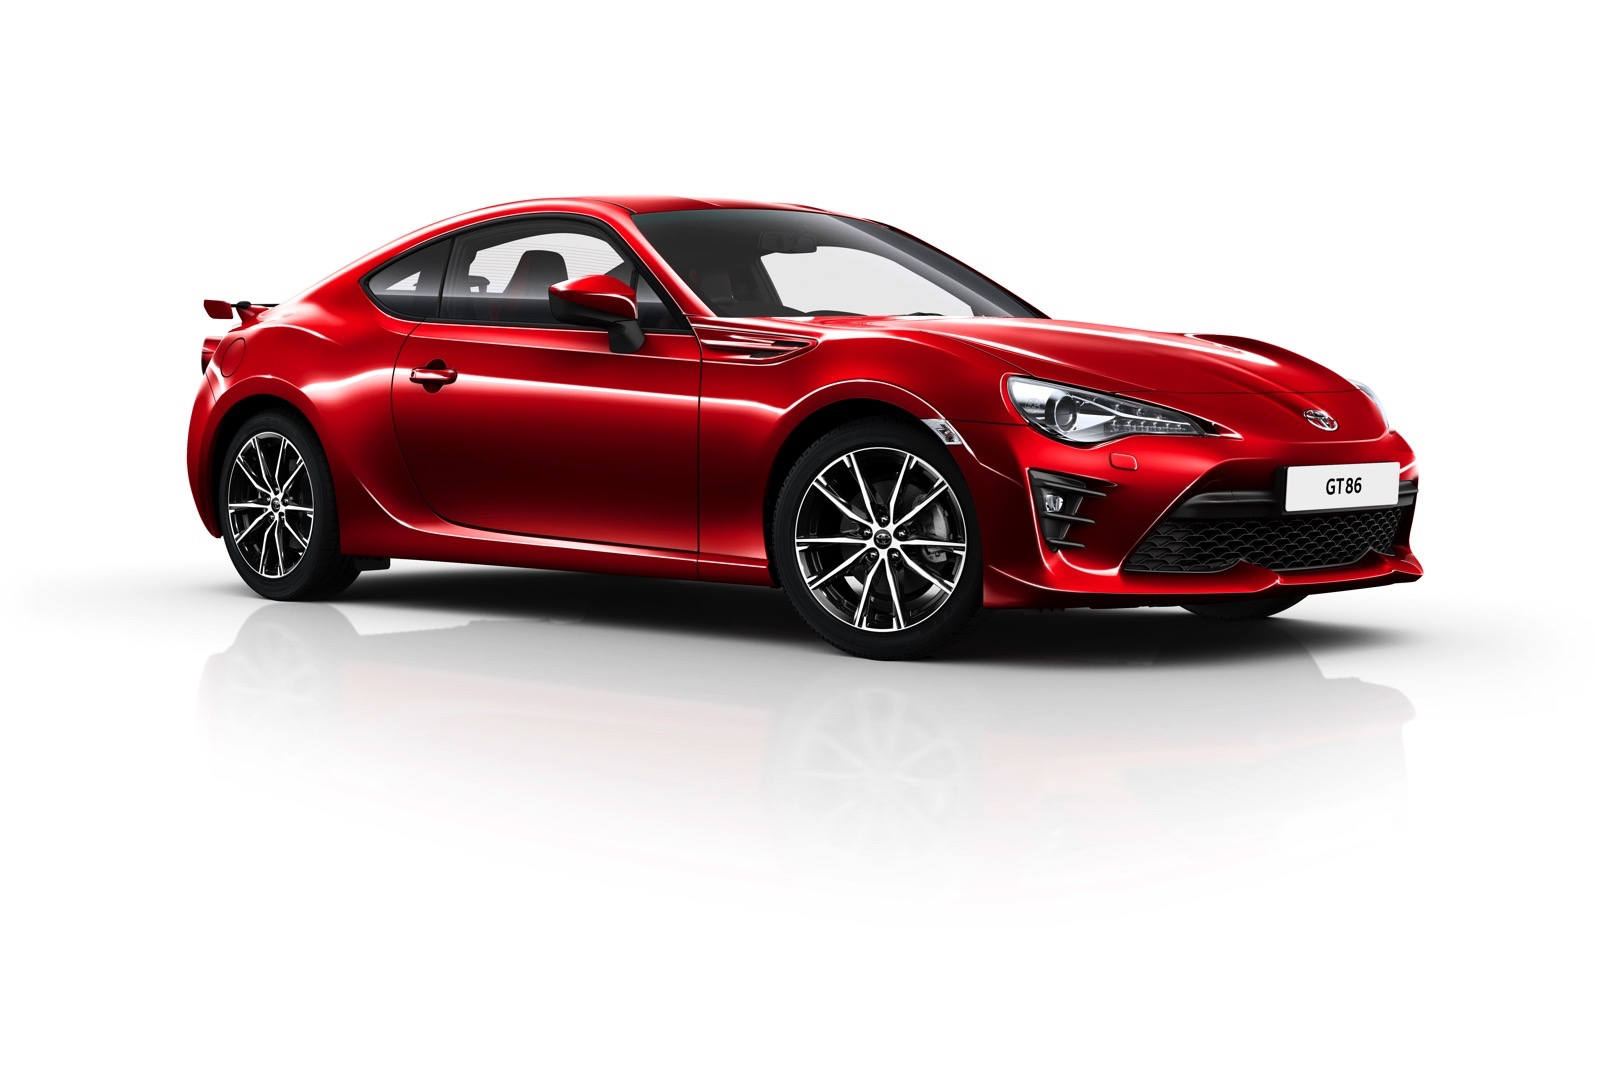 2017 toyota gt86 priced from 25 495 in the united kingdom autoevolution